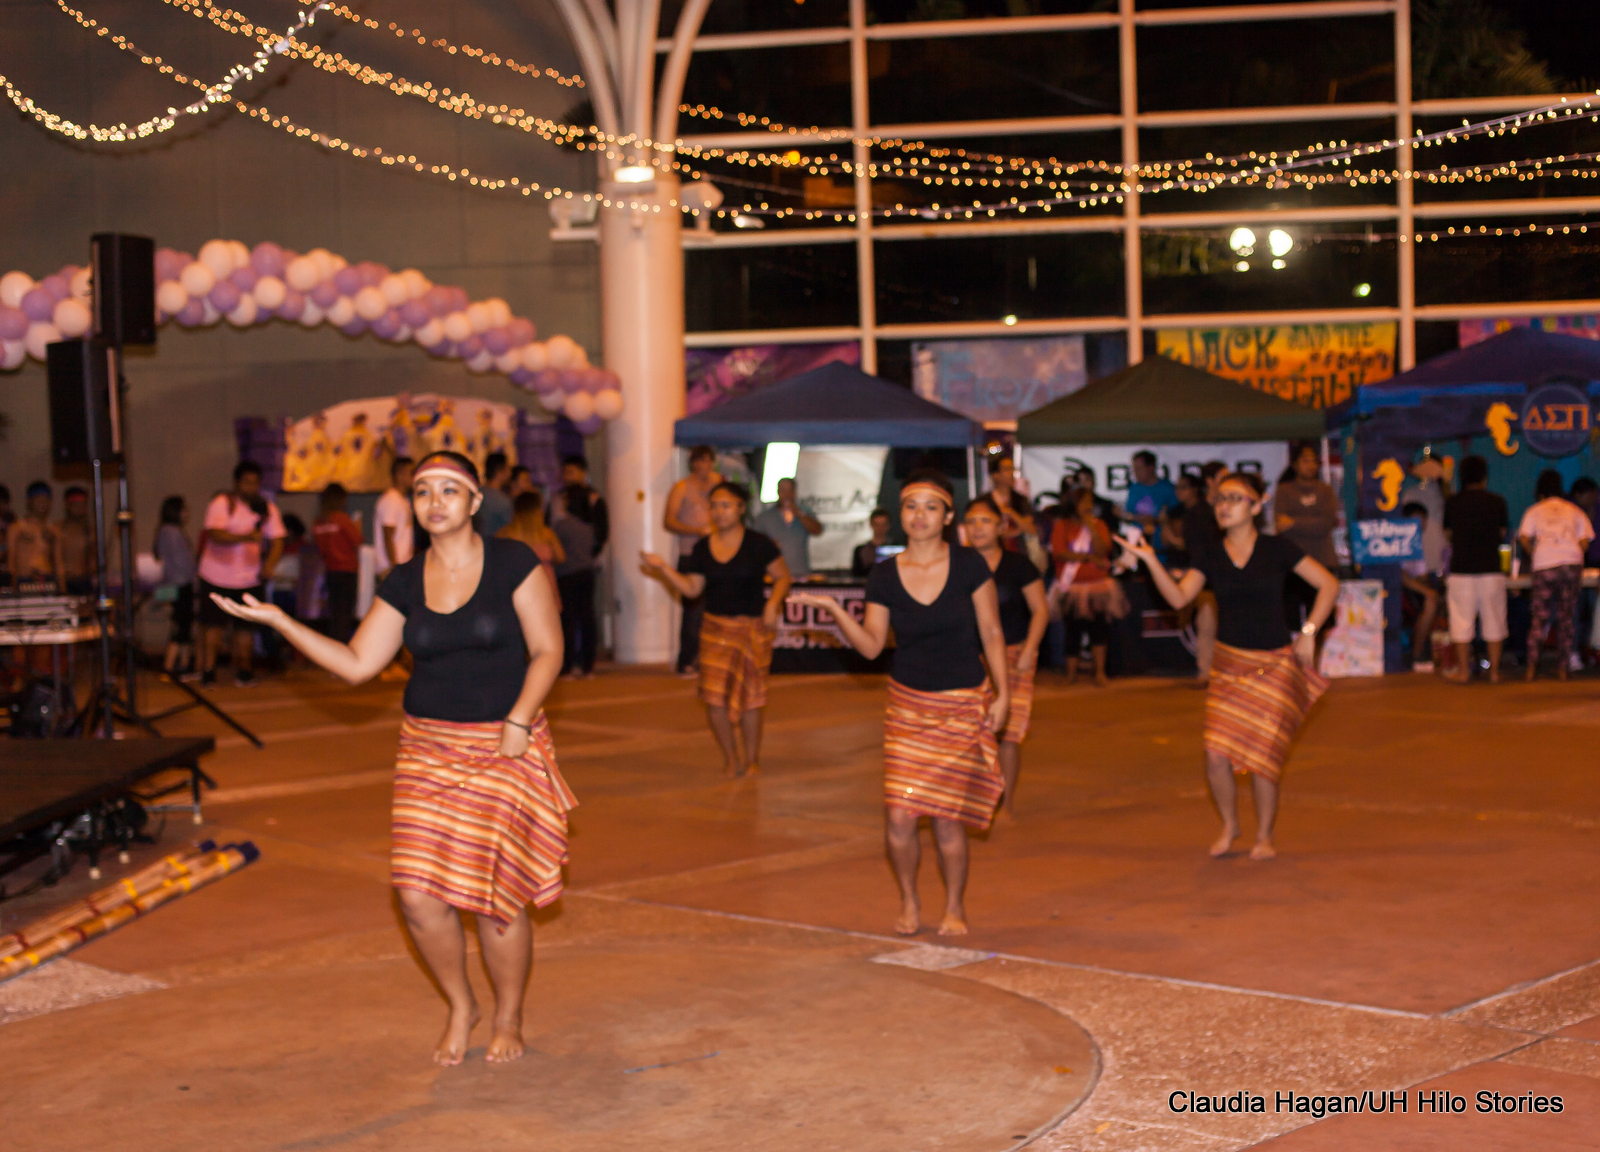 Photos 10th Annual Relay For Life Uh Hilos Only All Night Event Step 3 Weaving The Modules With Dancing Lights Ethnic